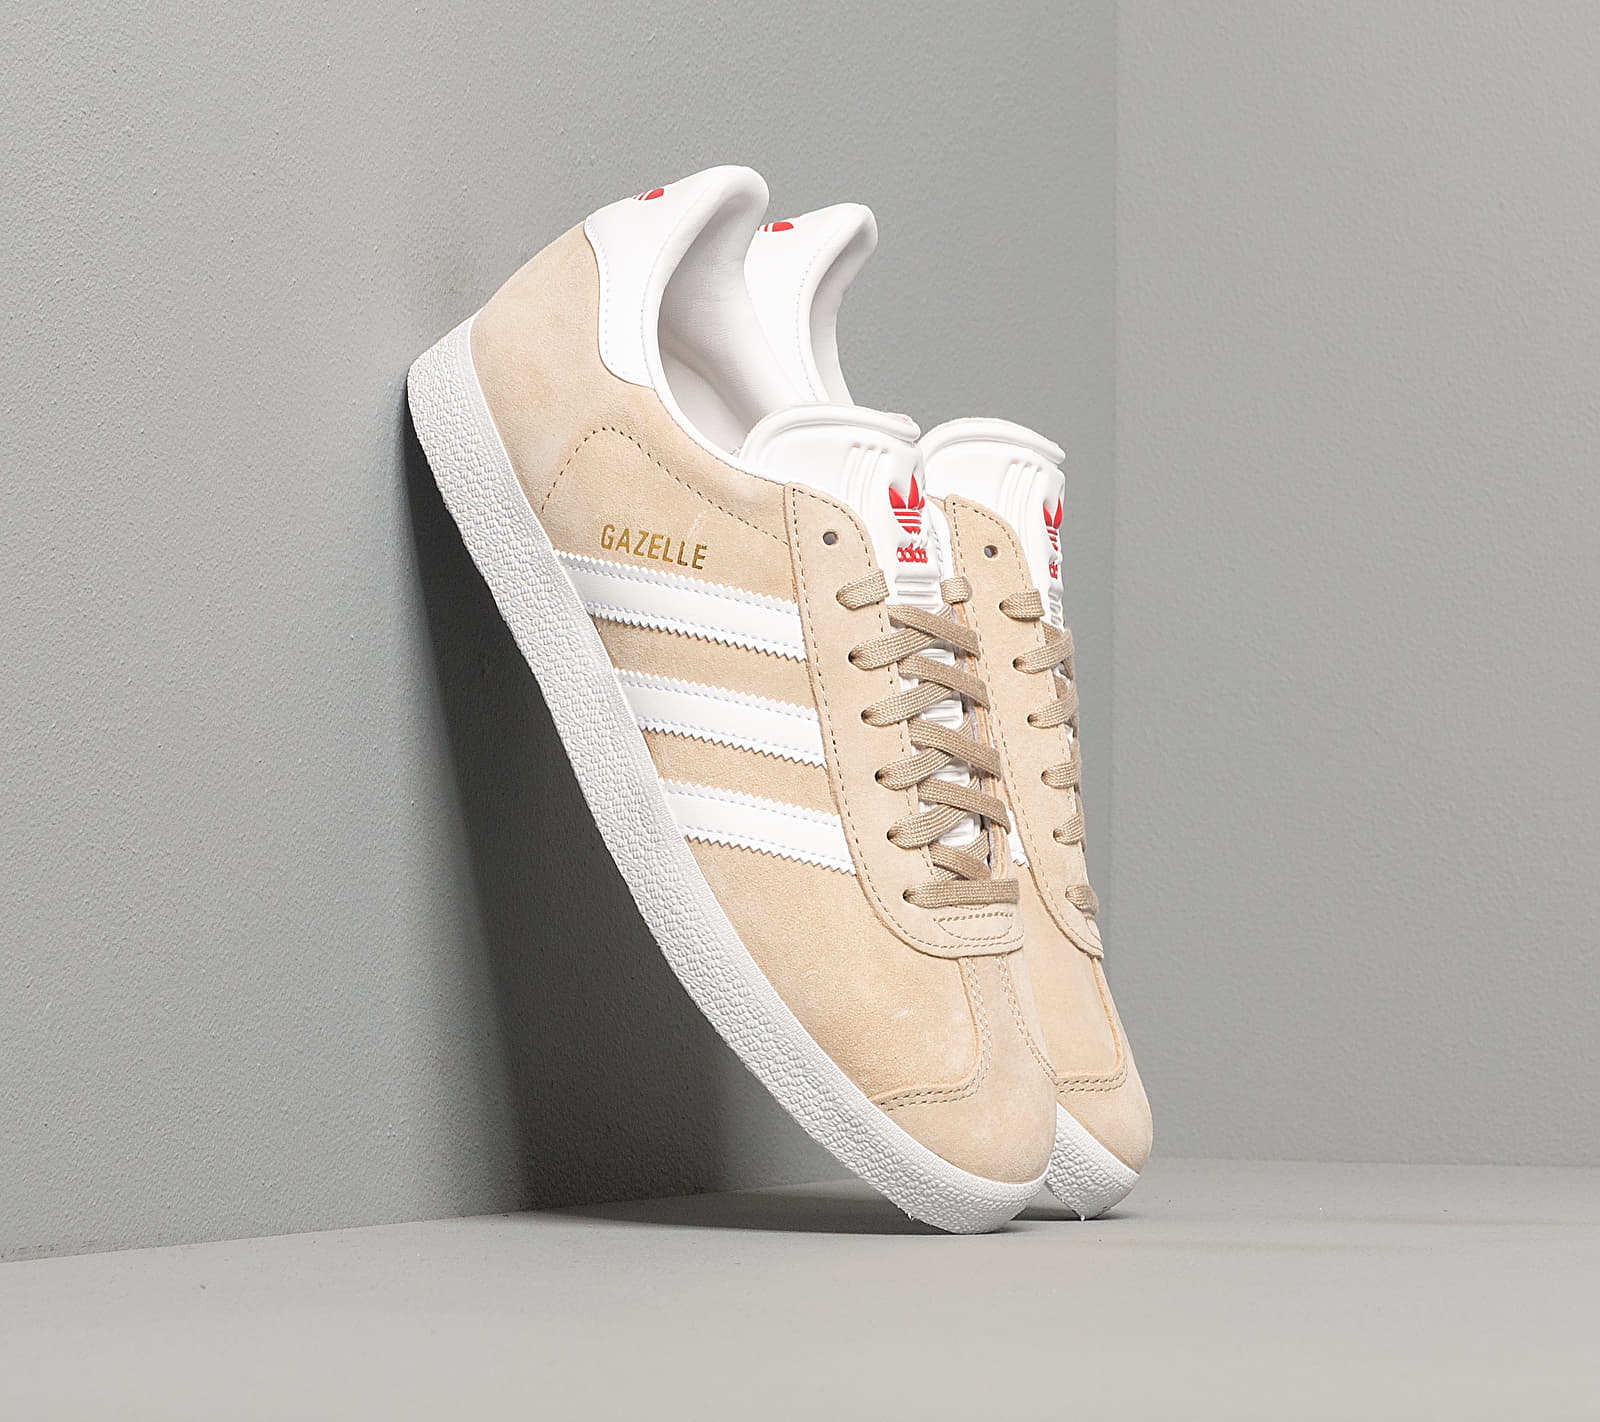 adidas Gazelle W Savanna/ Ftw White/ Glow Red EUR 40 2/3